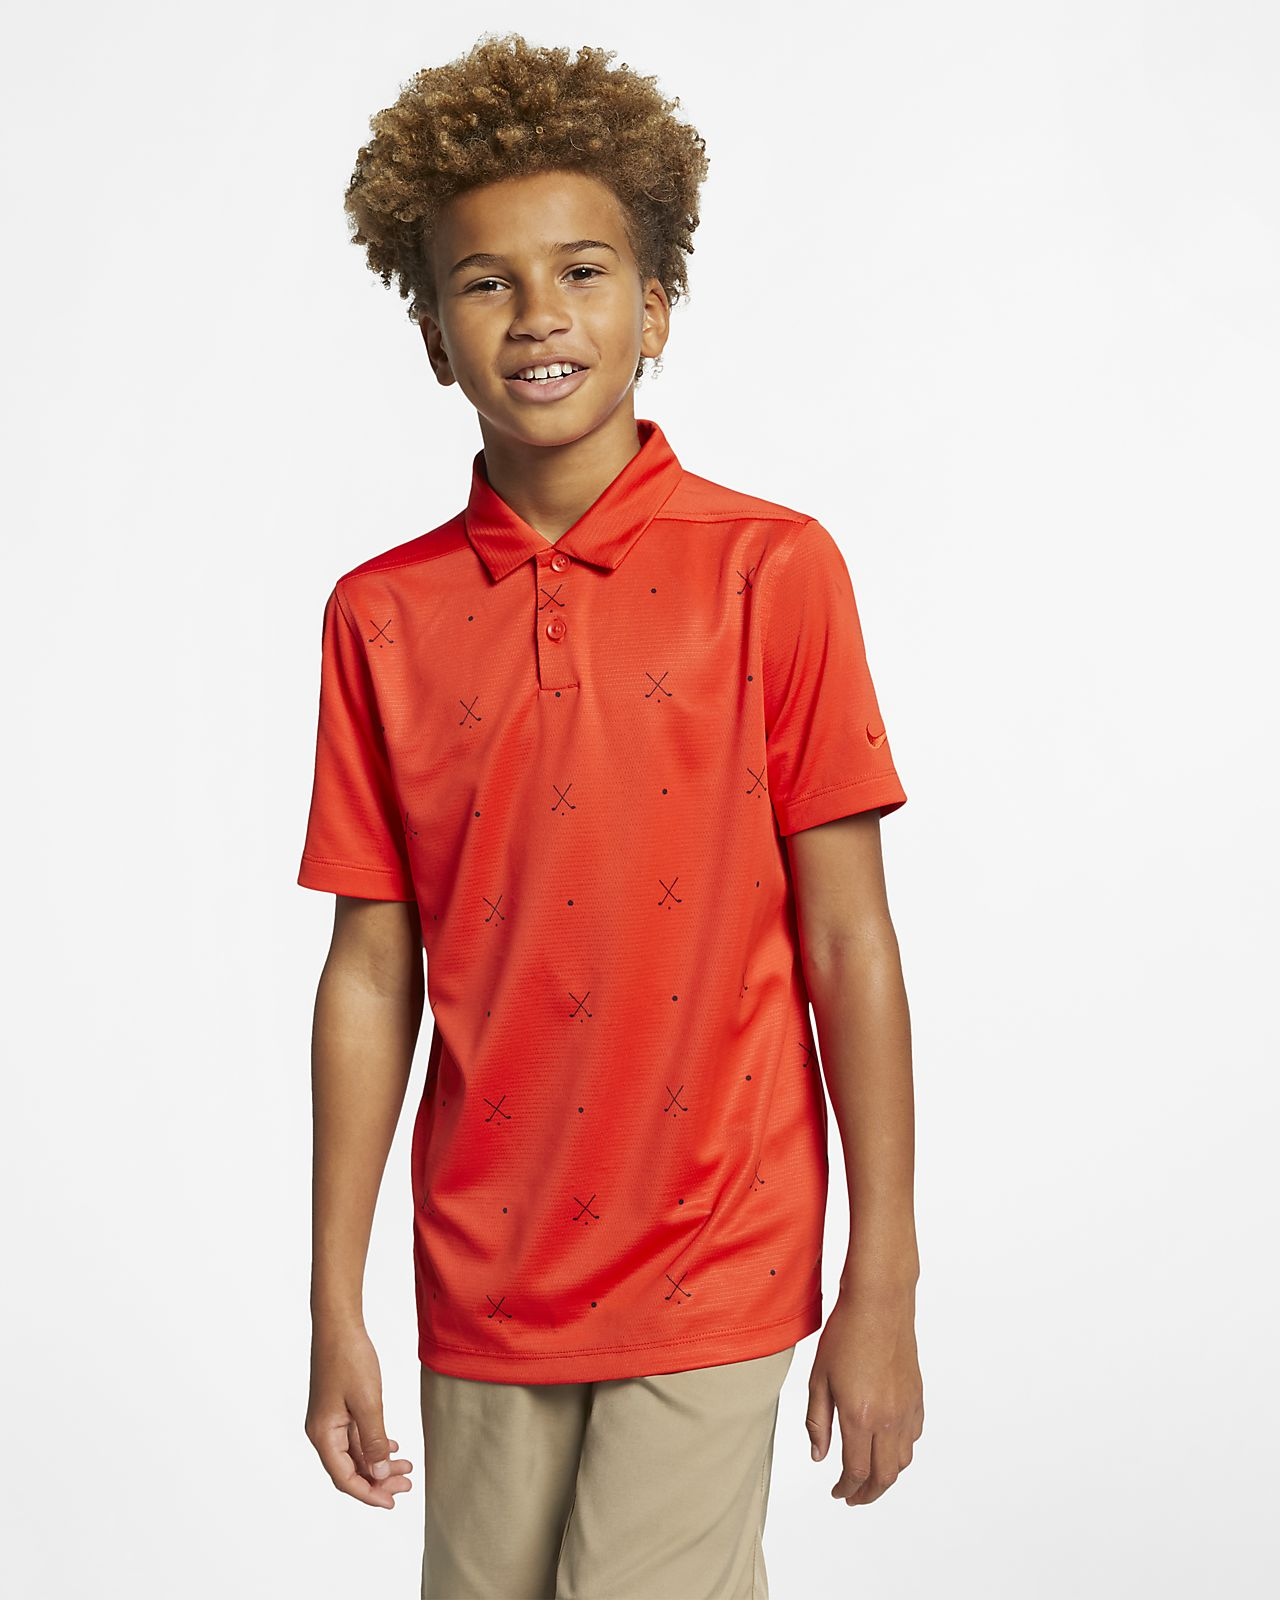 Nike Dri-FIT Big Kids' (Boys') Printed Golf Polo